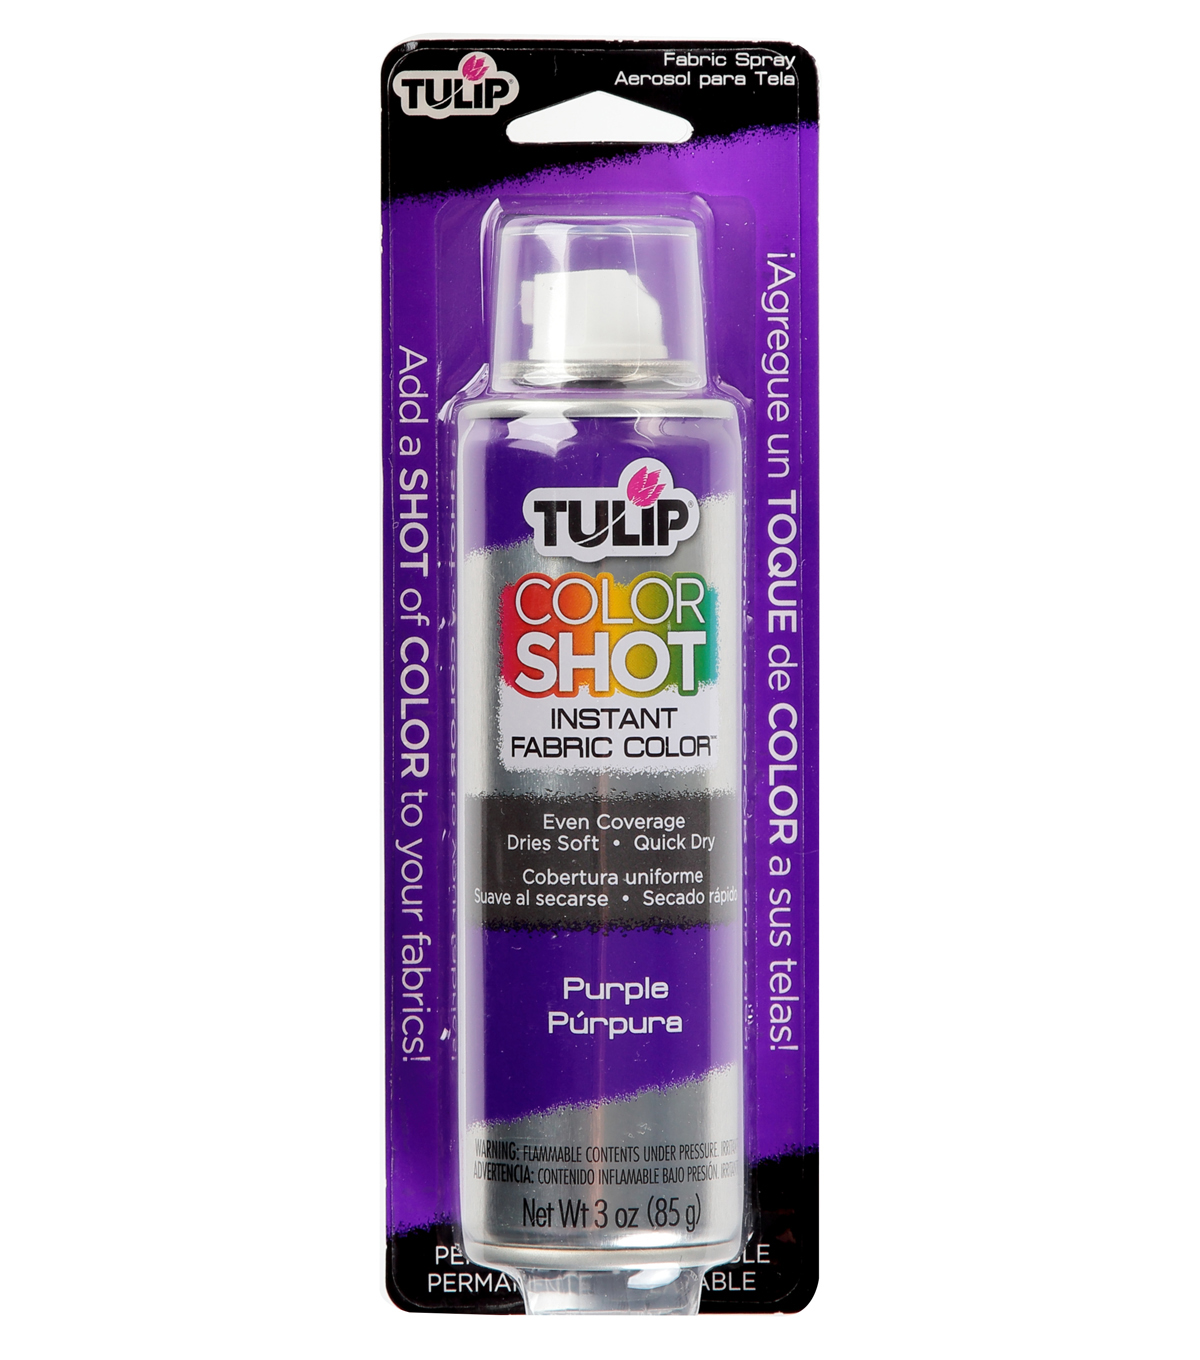 Tulip ColorShot Instant Fabric Color Spray 3oz, Purple